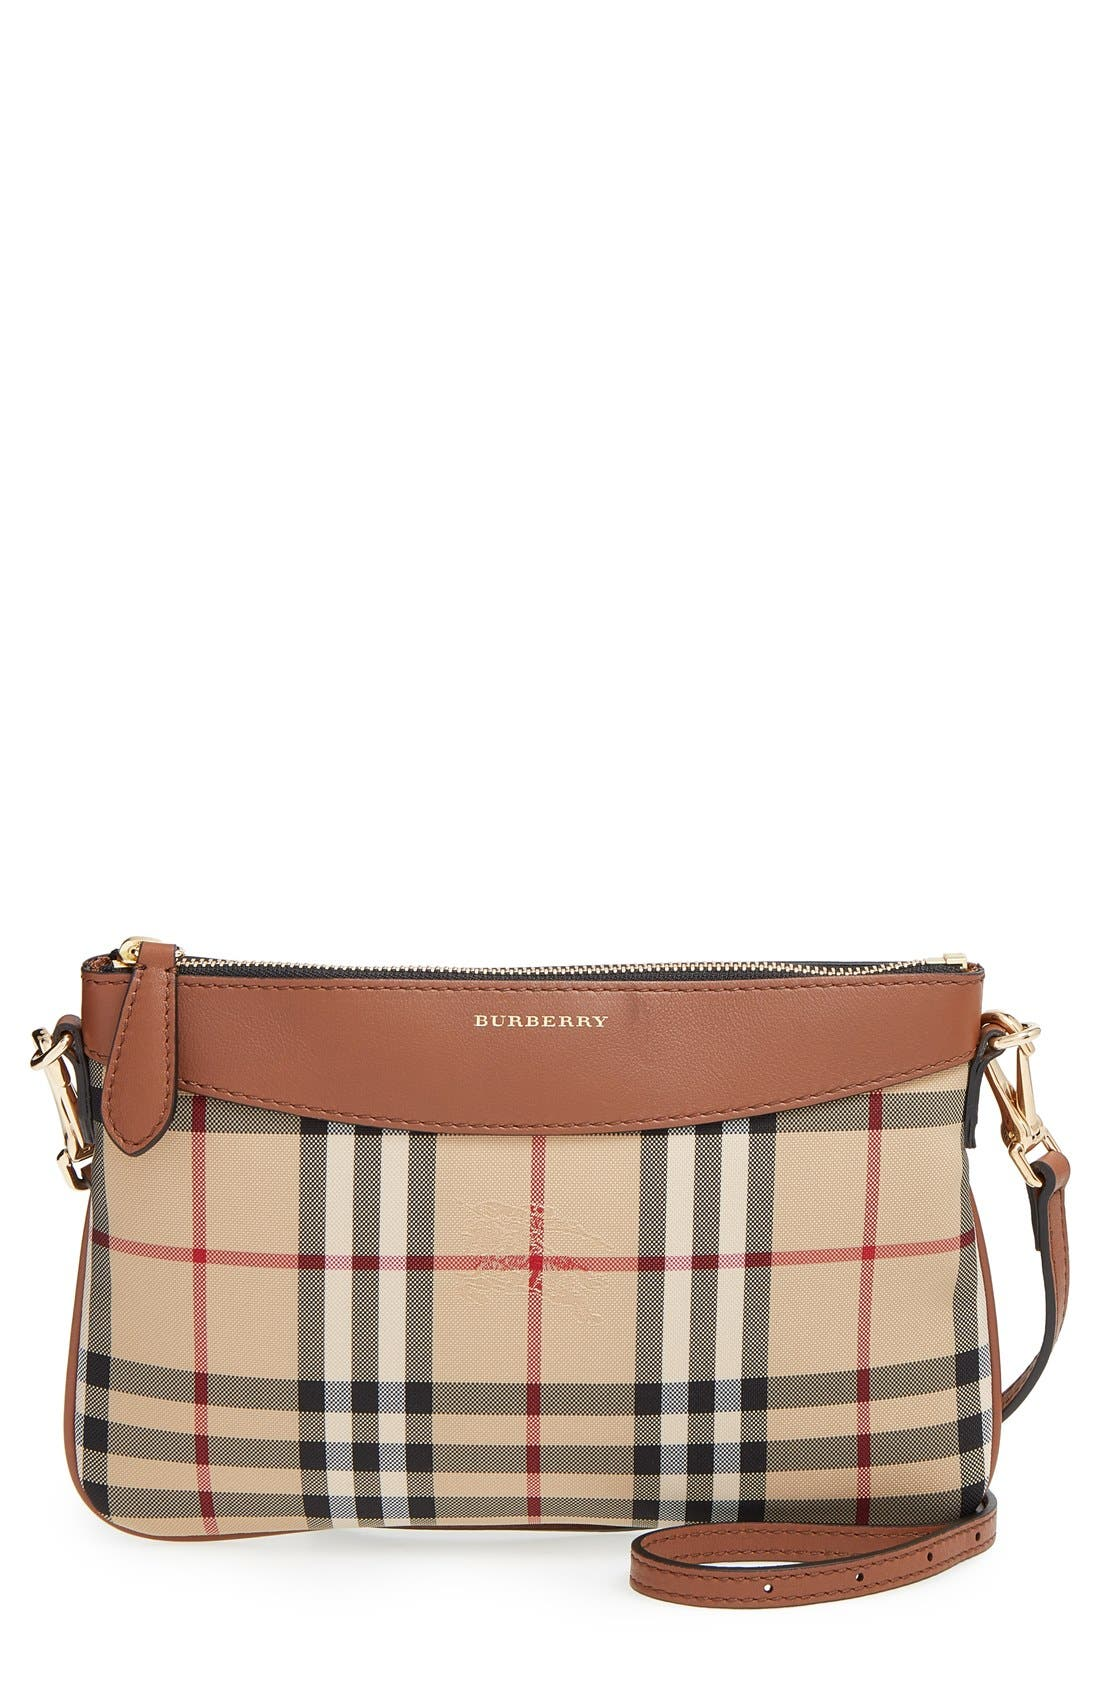 BURBERRY 'Peyton - Horseferry Check' Crossbody Bag